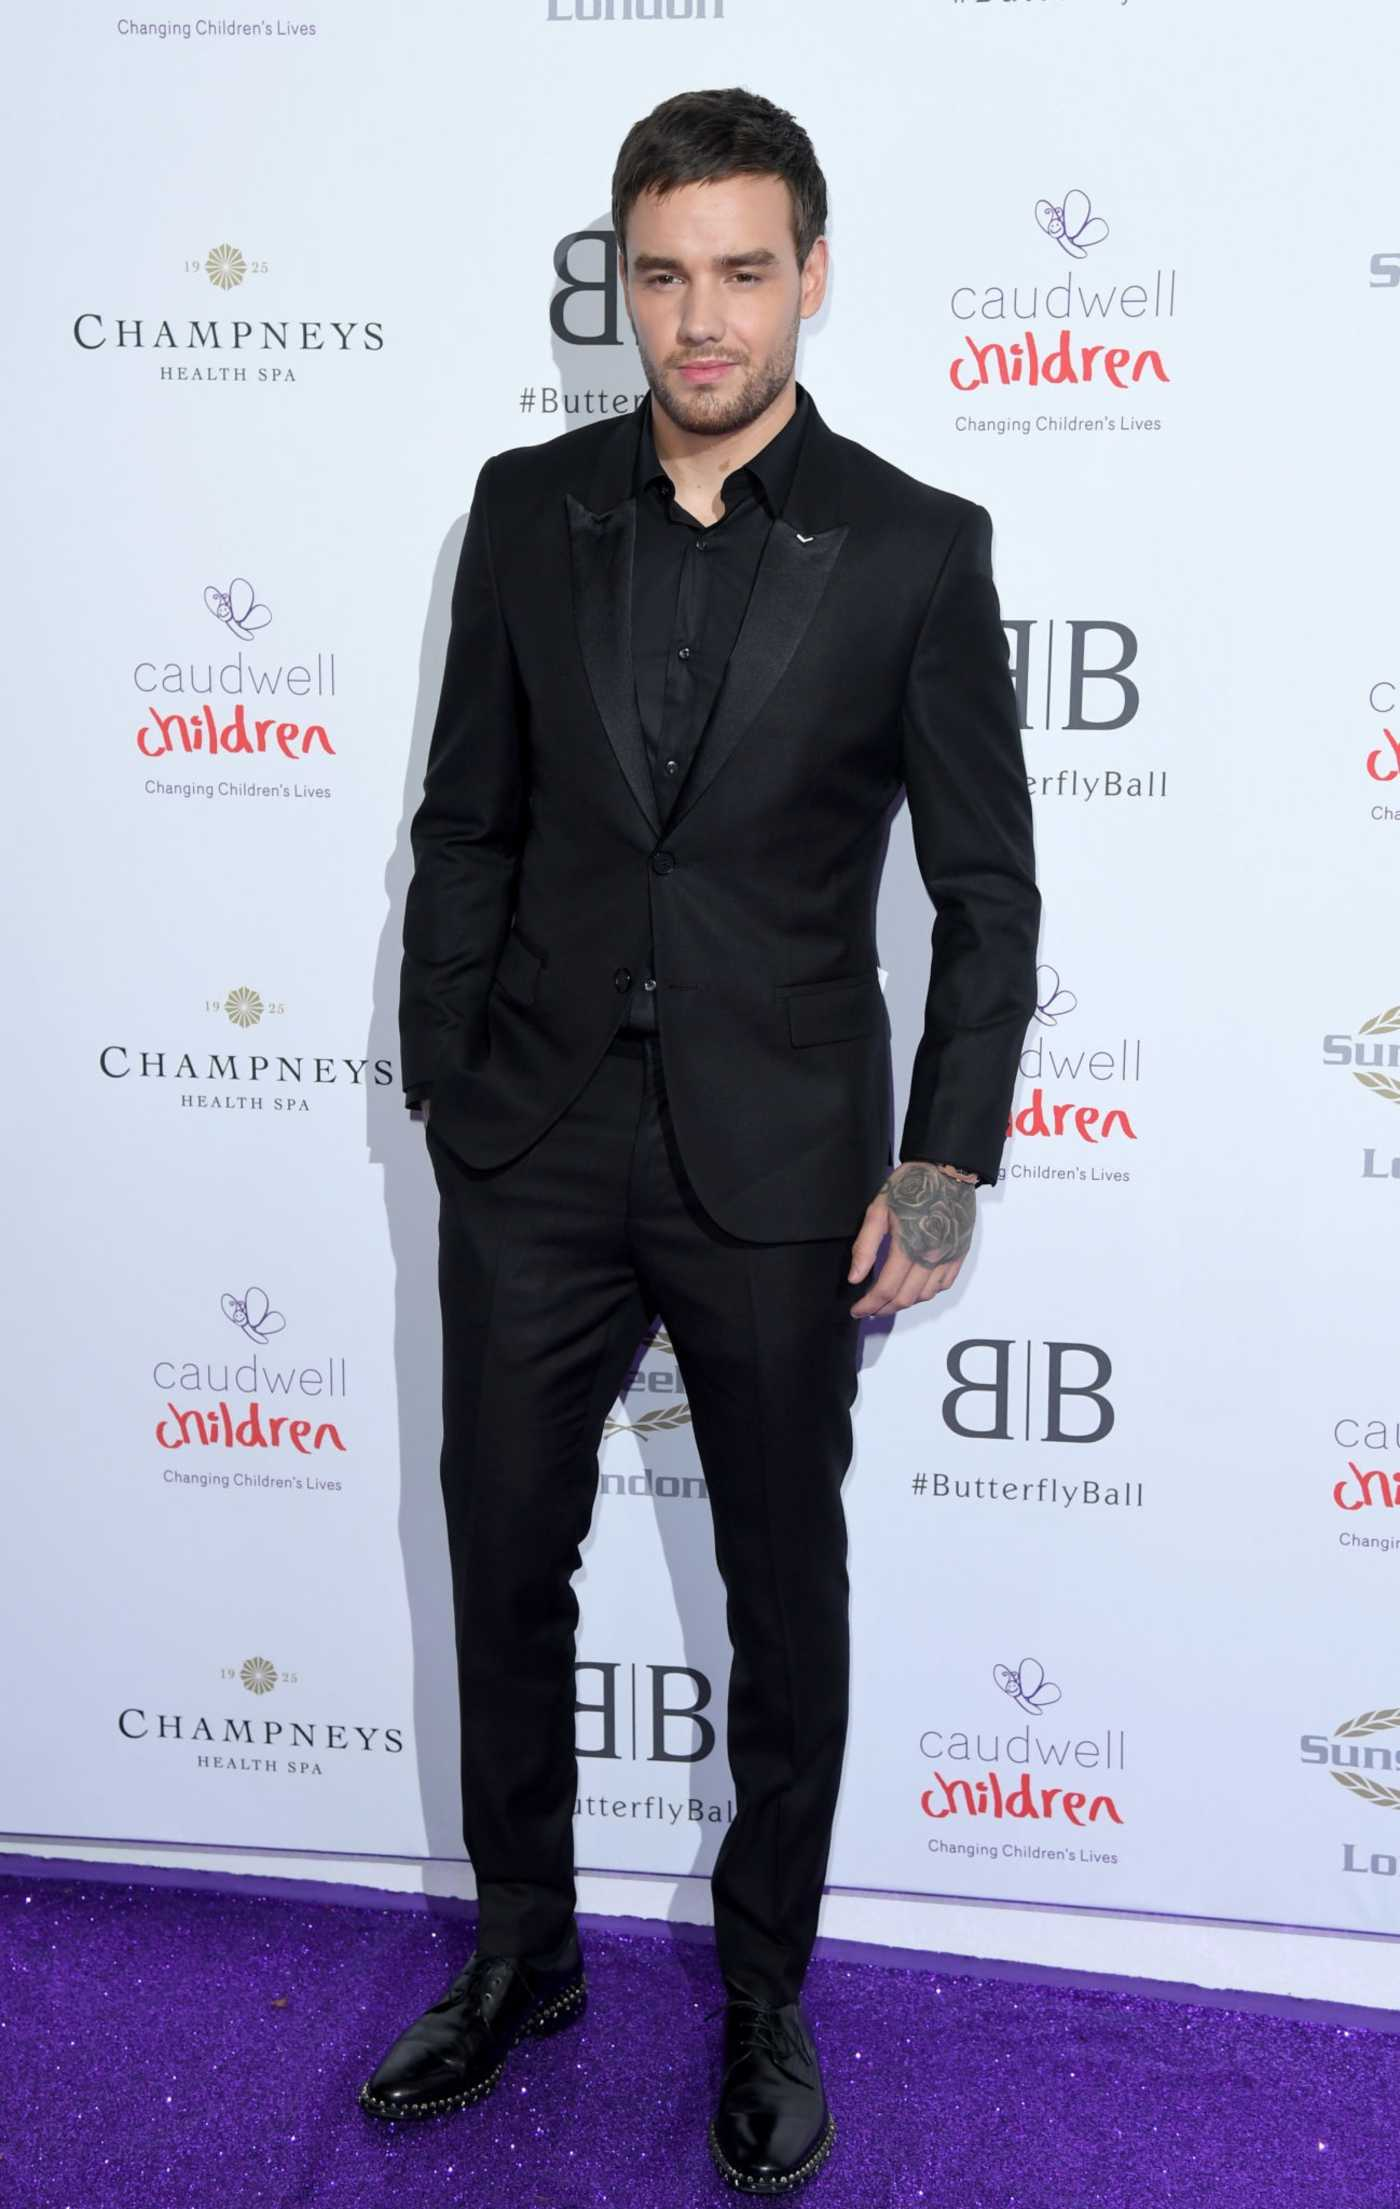 Liam Payne Attends The Caudwell Children Butterfly Ball at The Grosvenor House Hotel in London 06/13/2019